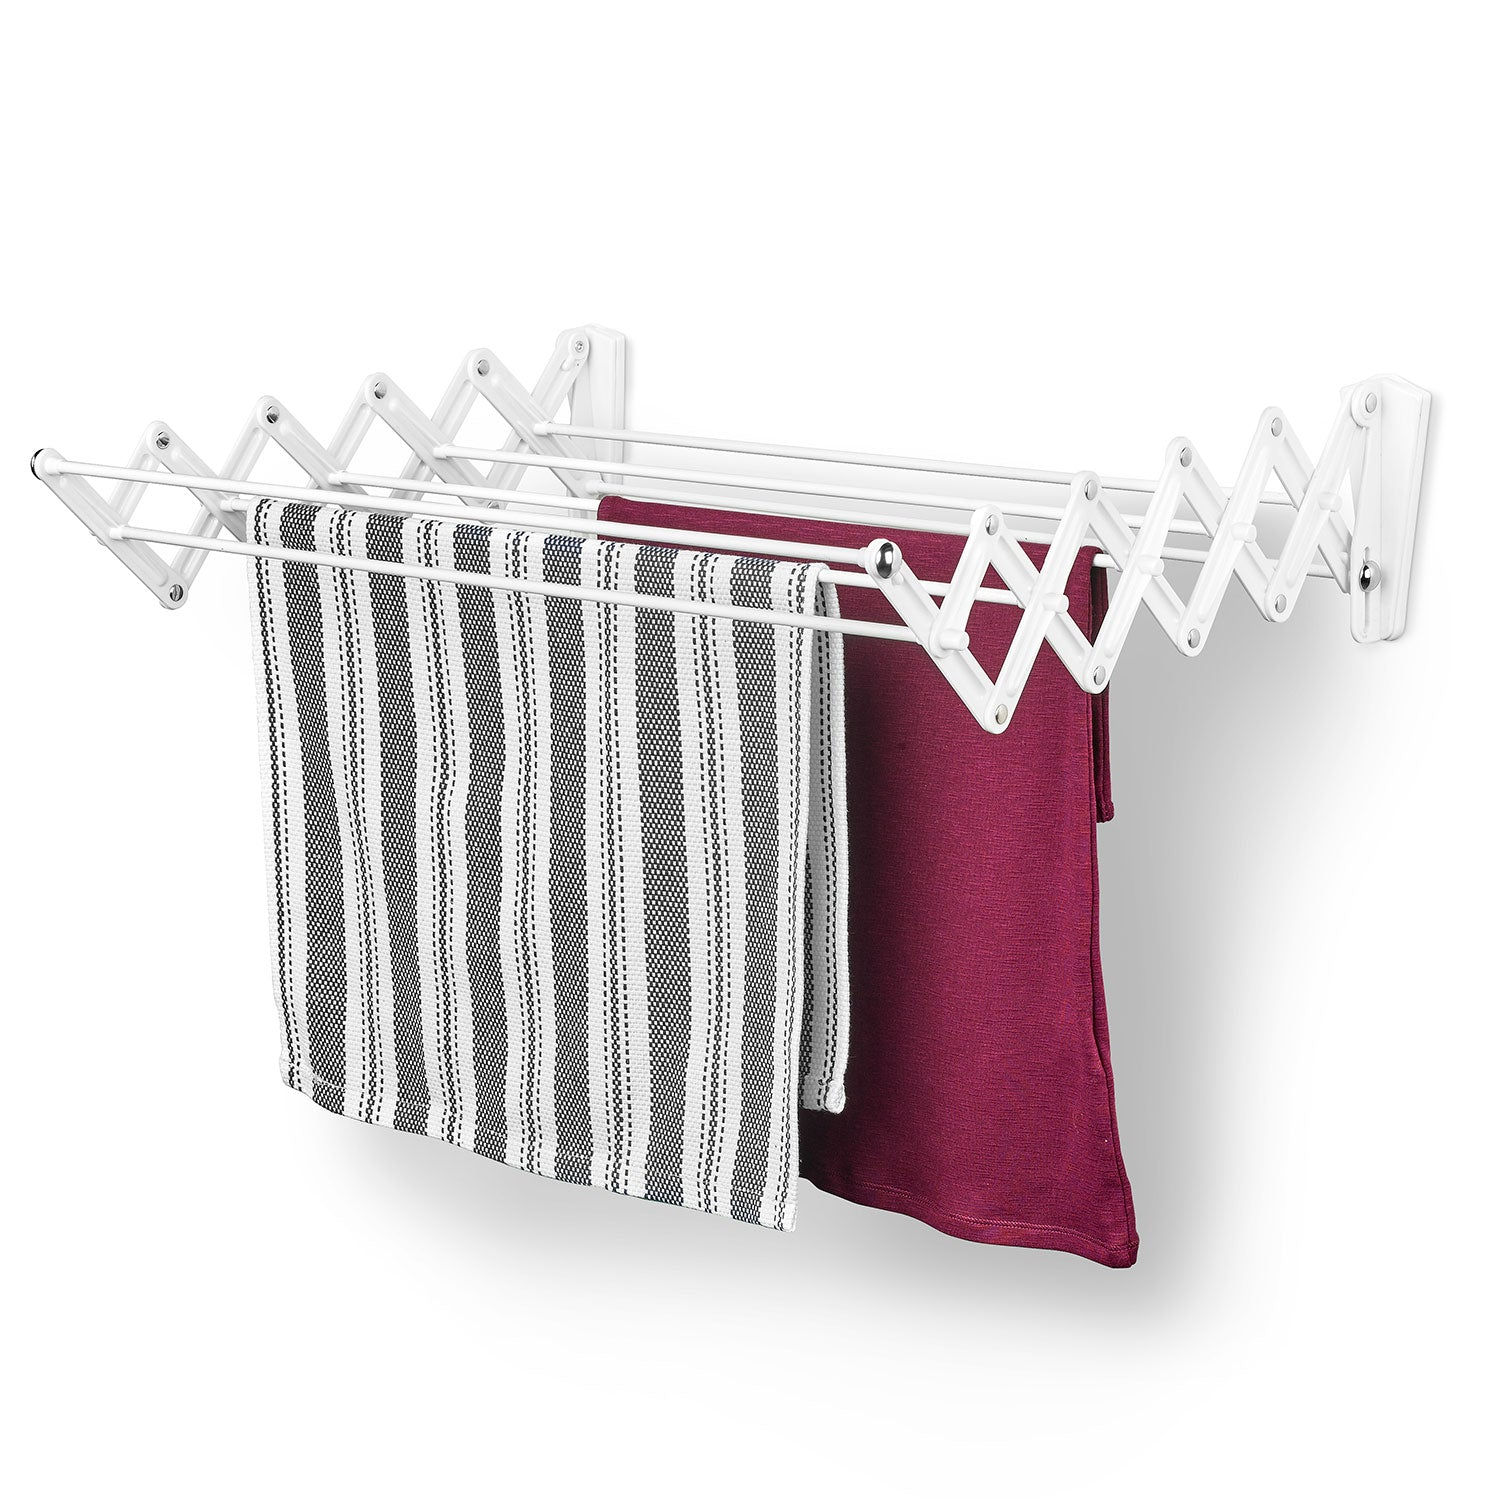 Wall Mount Accordion Dryer